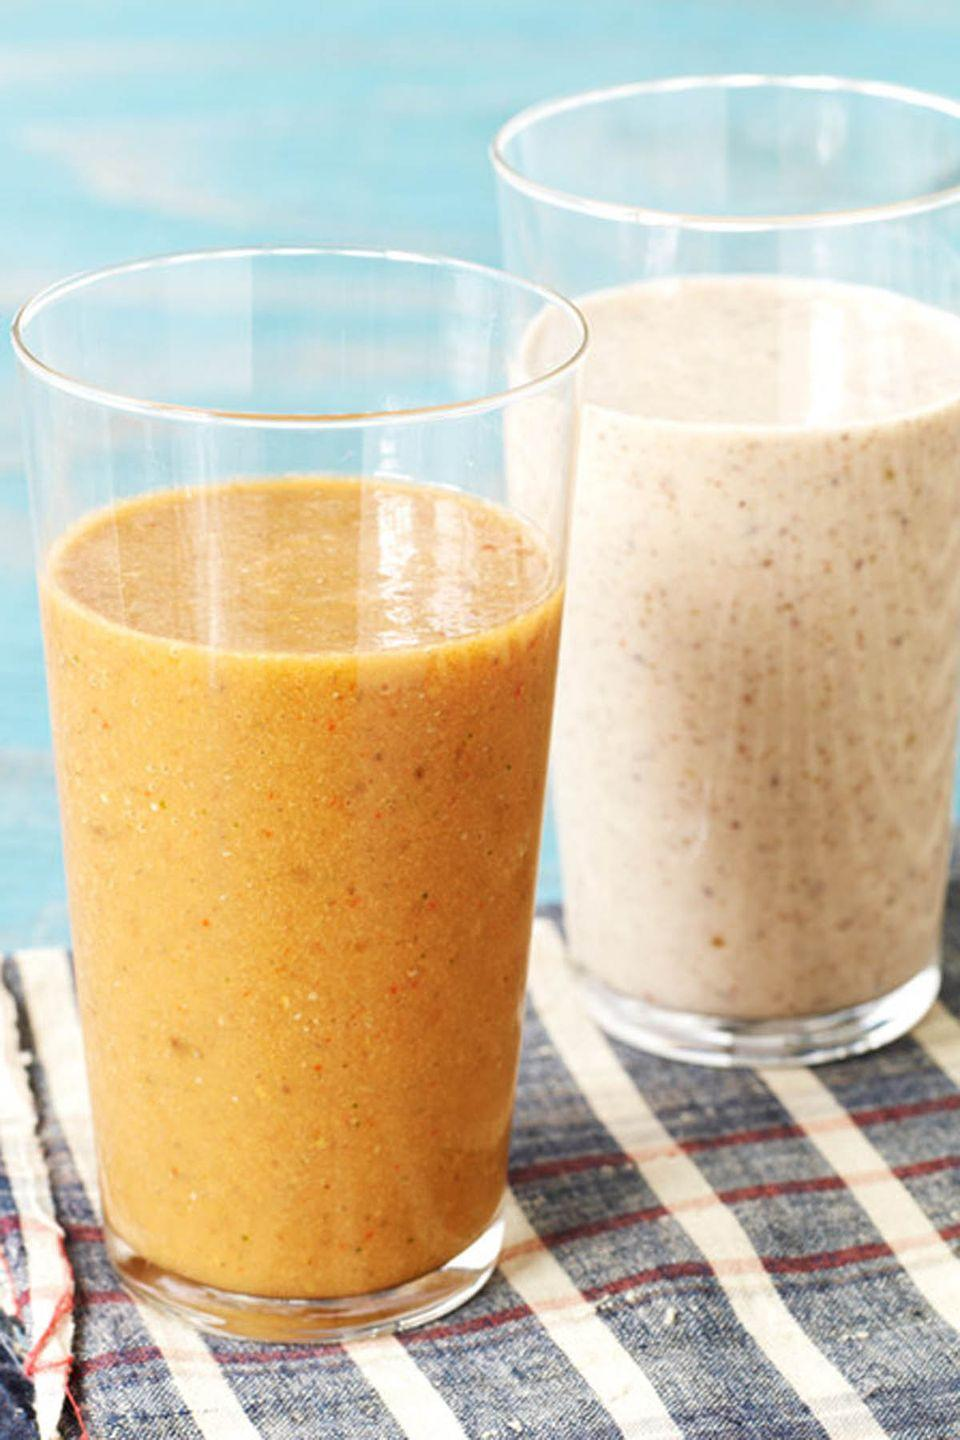 """<p>Packed with good stuff like chia seeds and goji berries, this smoothie will keep you full until lunch. </p><p><em><a href=""""http://www.delish.com/cooking/recipe-ideas/recipes/a22571/sages-smoothie-recipe-del0214/"""" rel=""""nofollow noopener"""" target=""""_blank"""" data-ylk=""""slk:Get the recipe from Delish »"""" class=""""link rapid-noclick-resp"""">Get the recipe from Delish »</a></em></p>"""